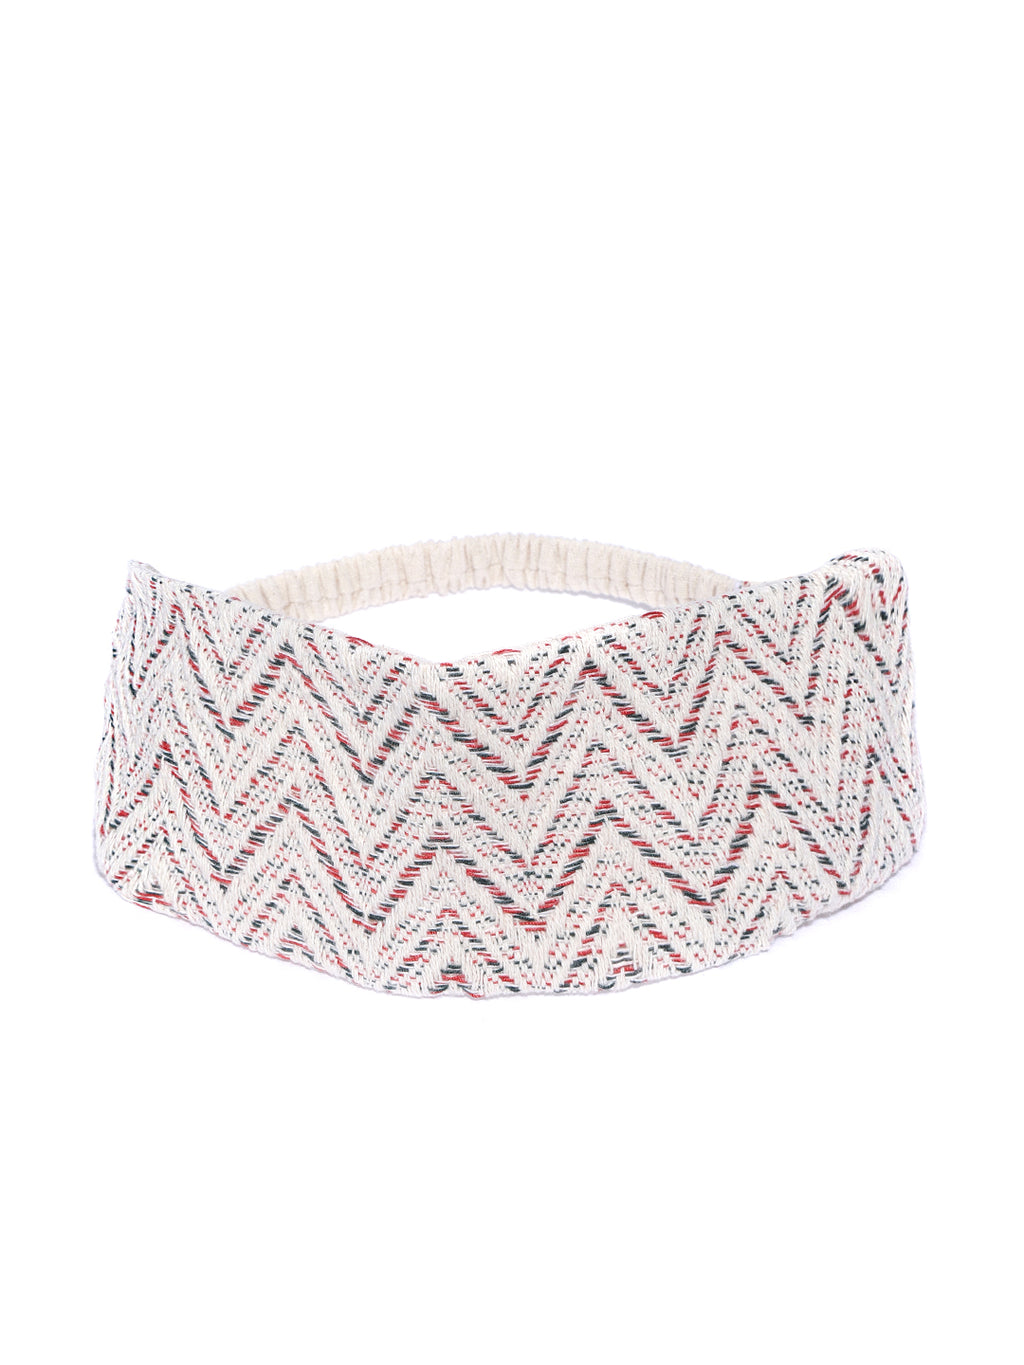 Blueberry grey woven design hairband